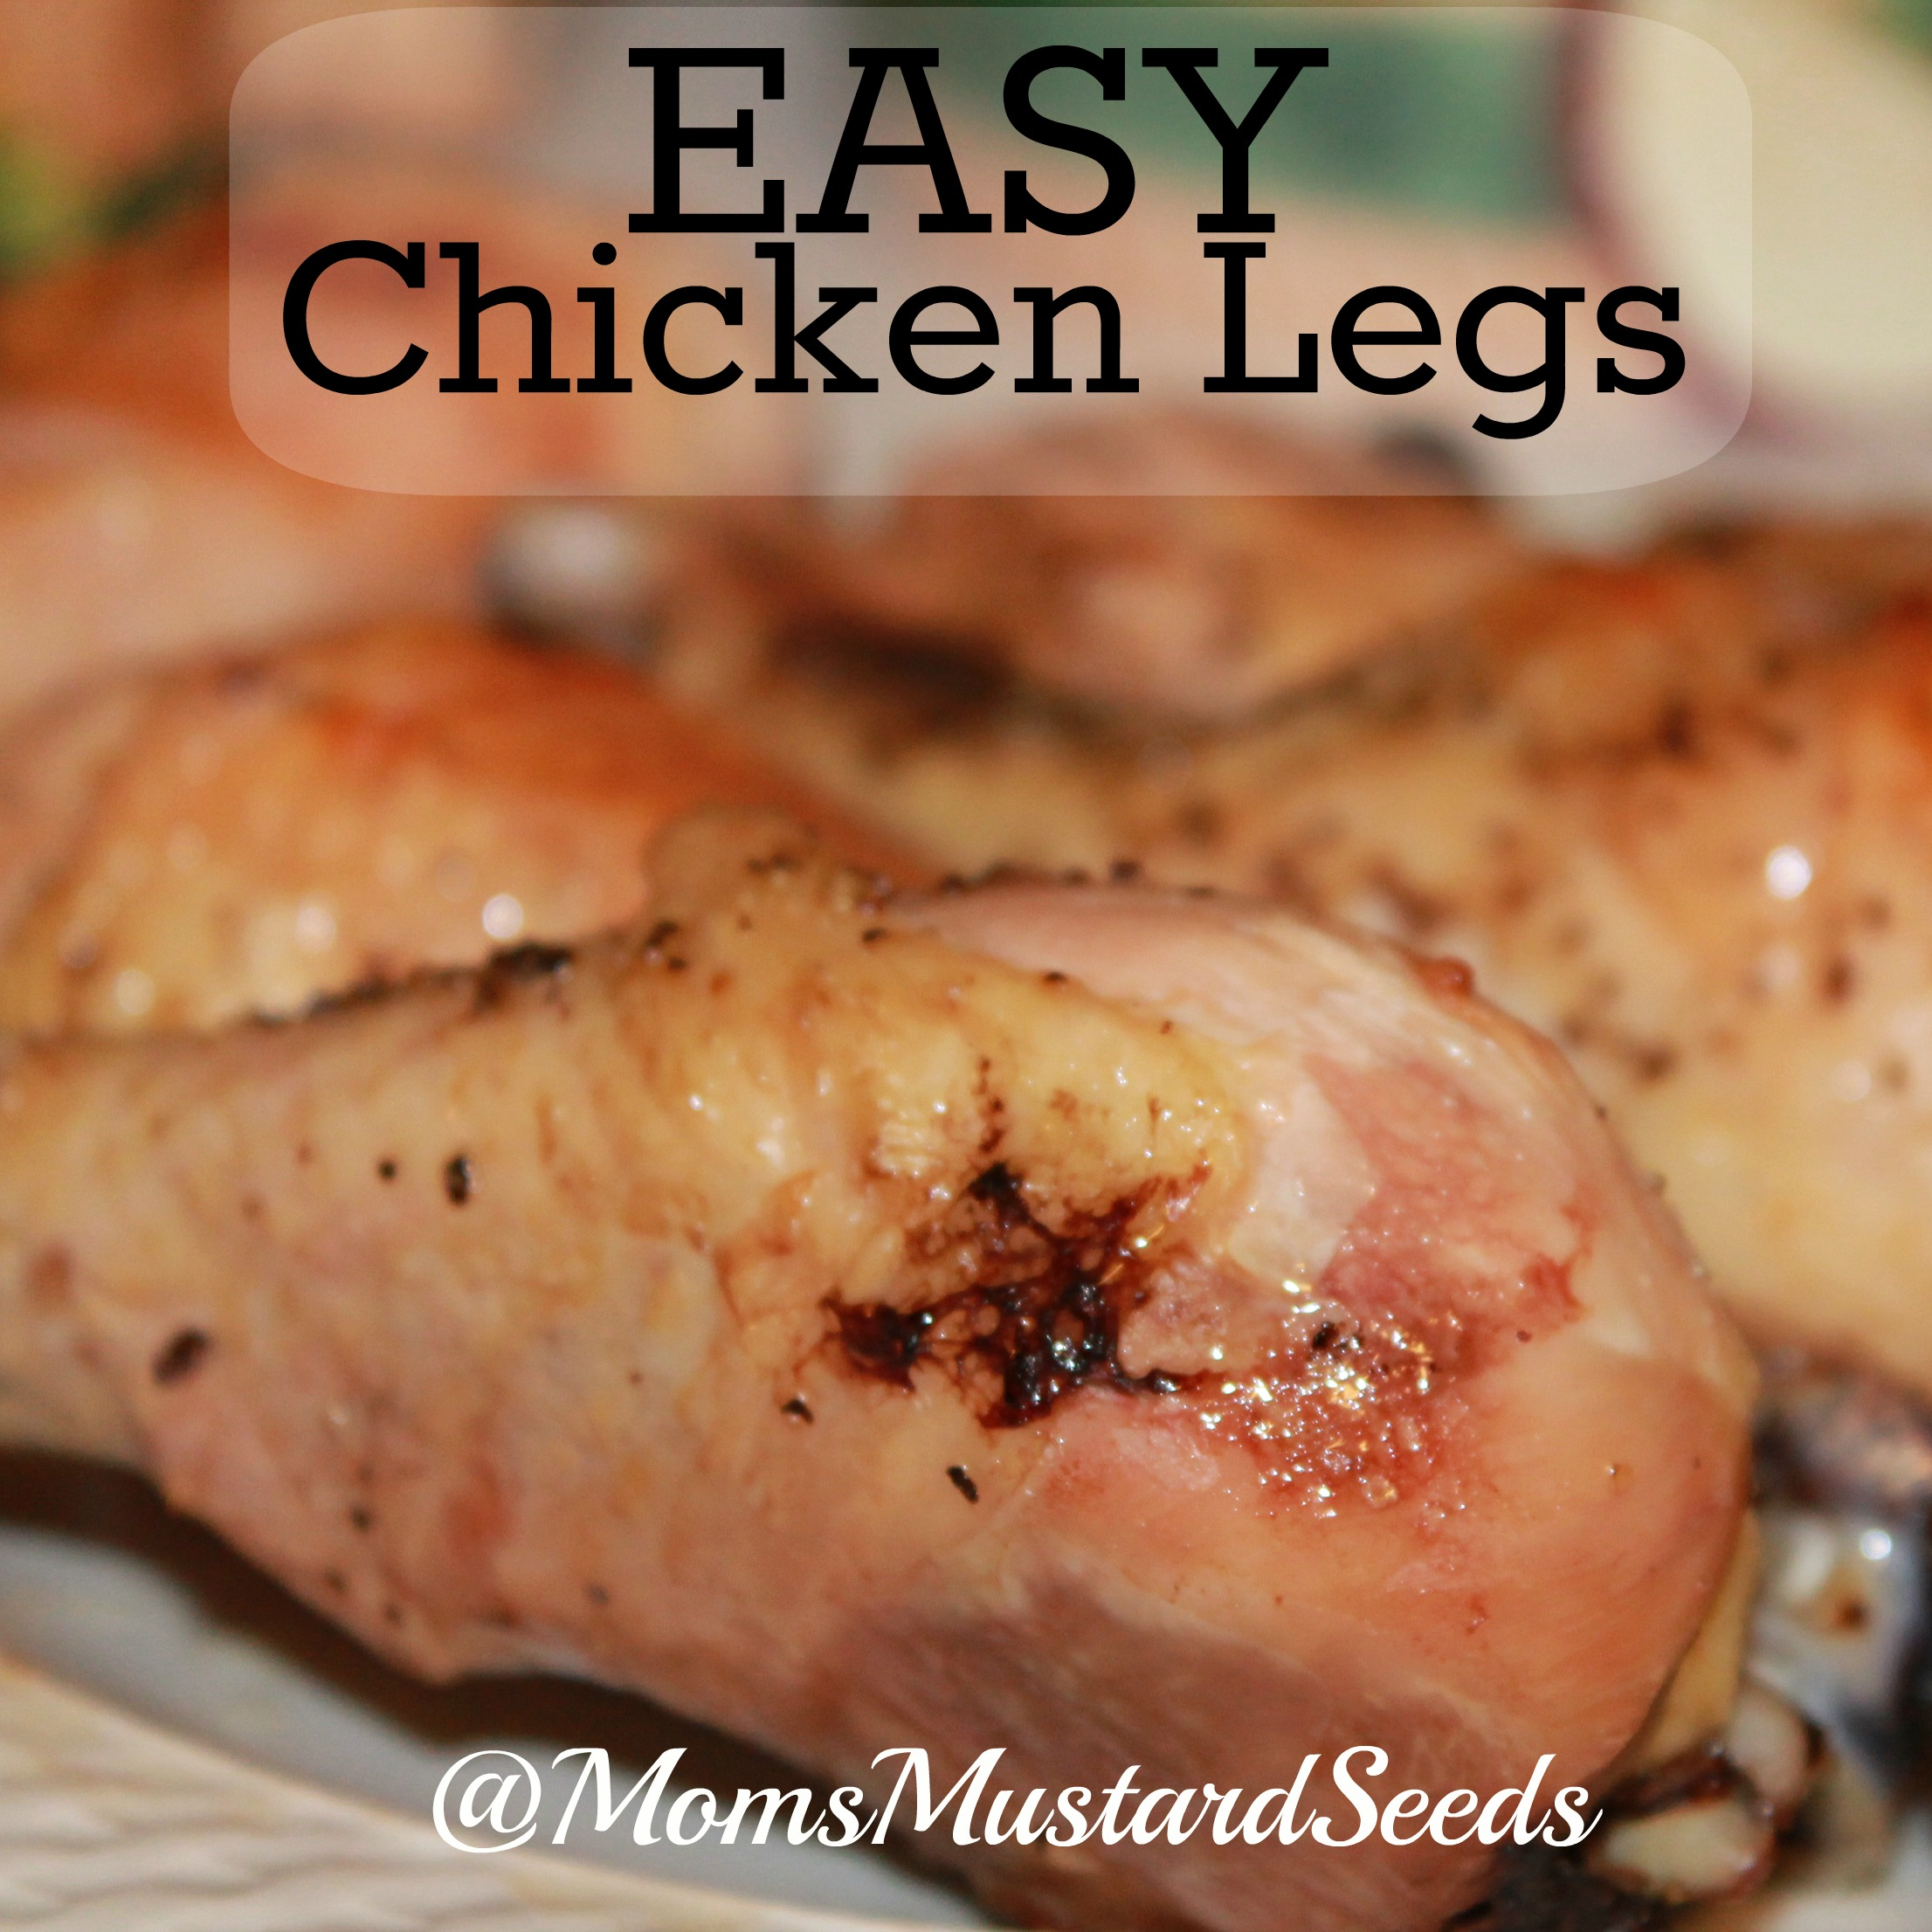 EASY Chicken Legs!